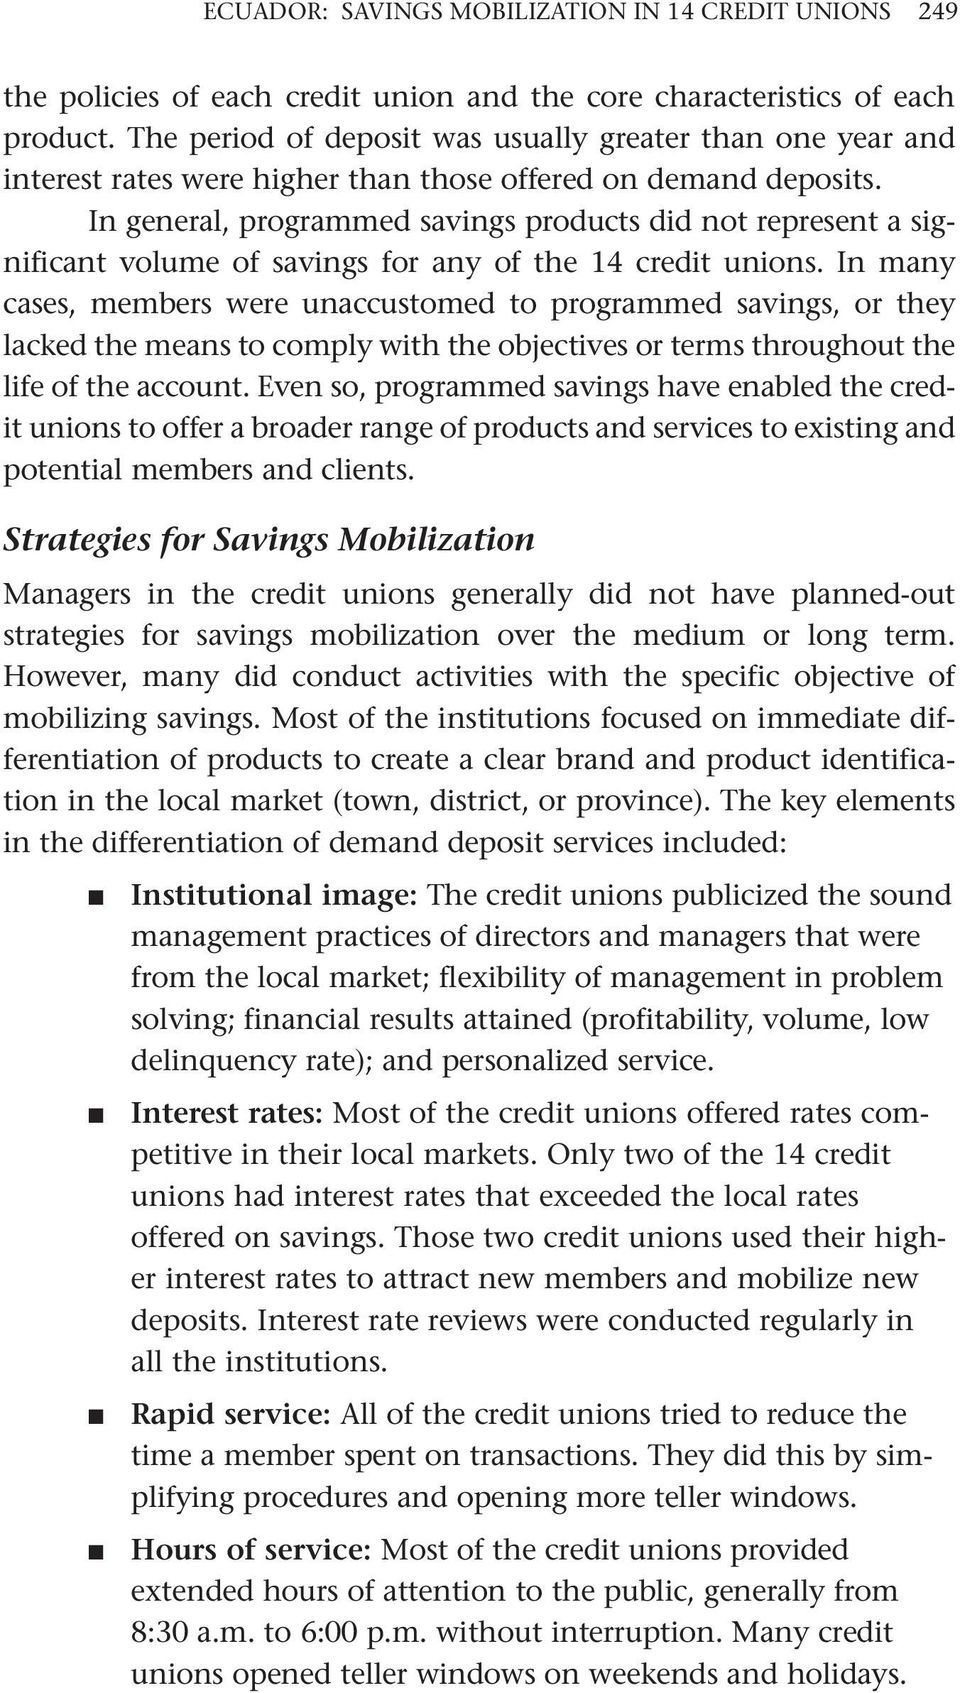 In general, programmed savings products did not represent a significant volume of savings for any of the 14 credit unions.